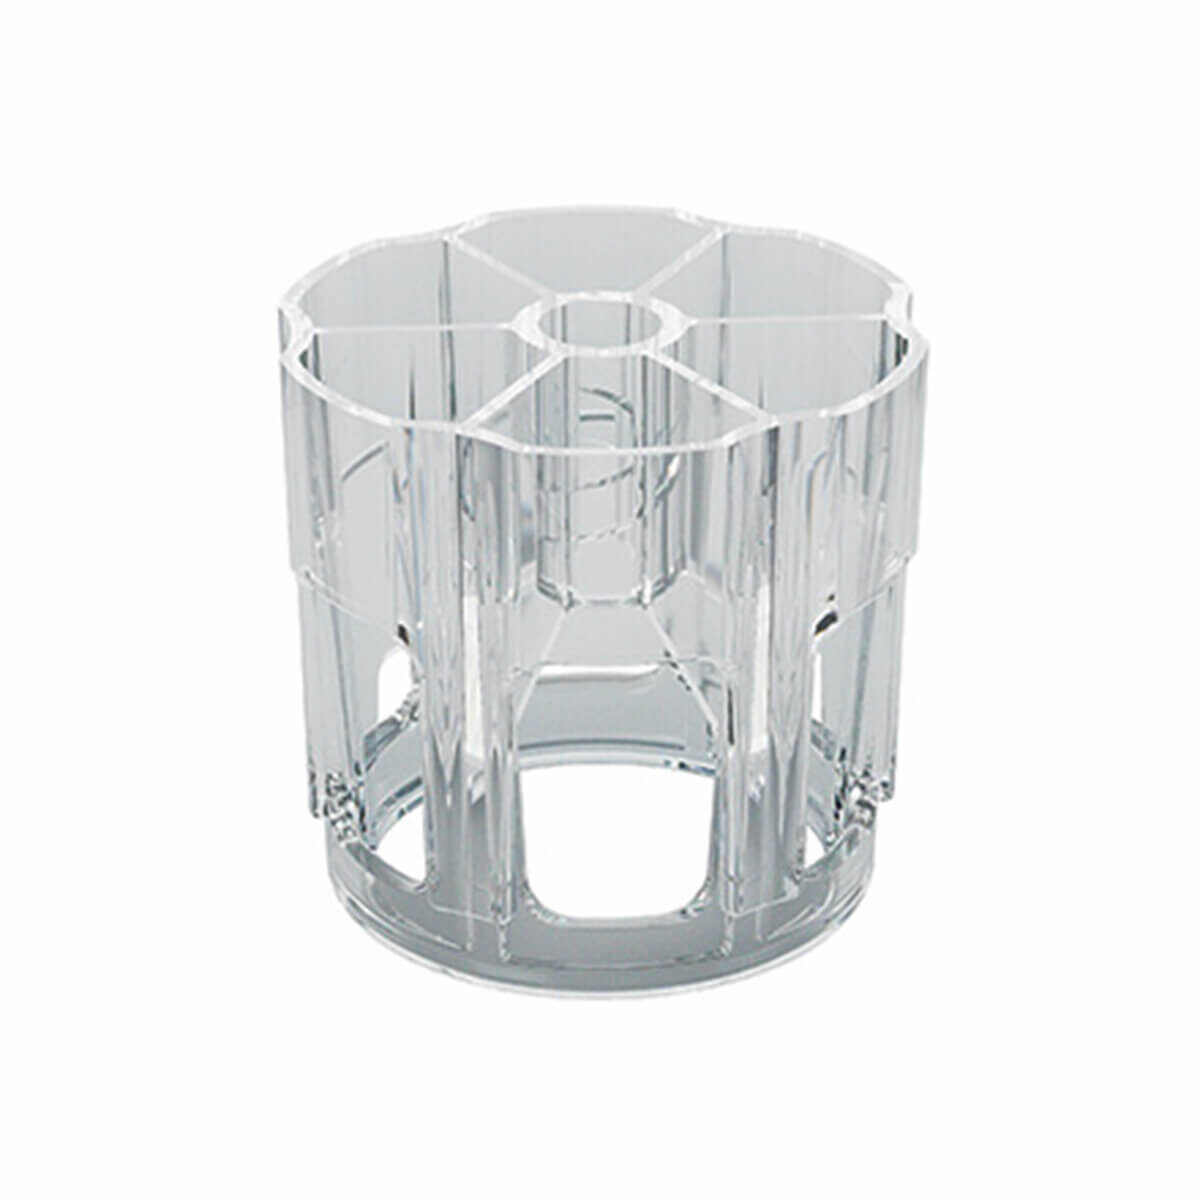 Proleveling System Clear Leveling Cap